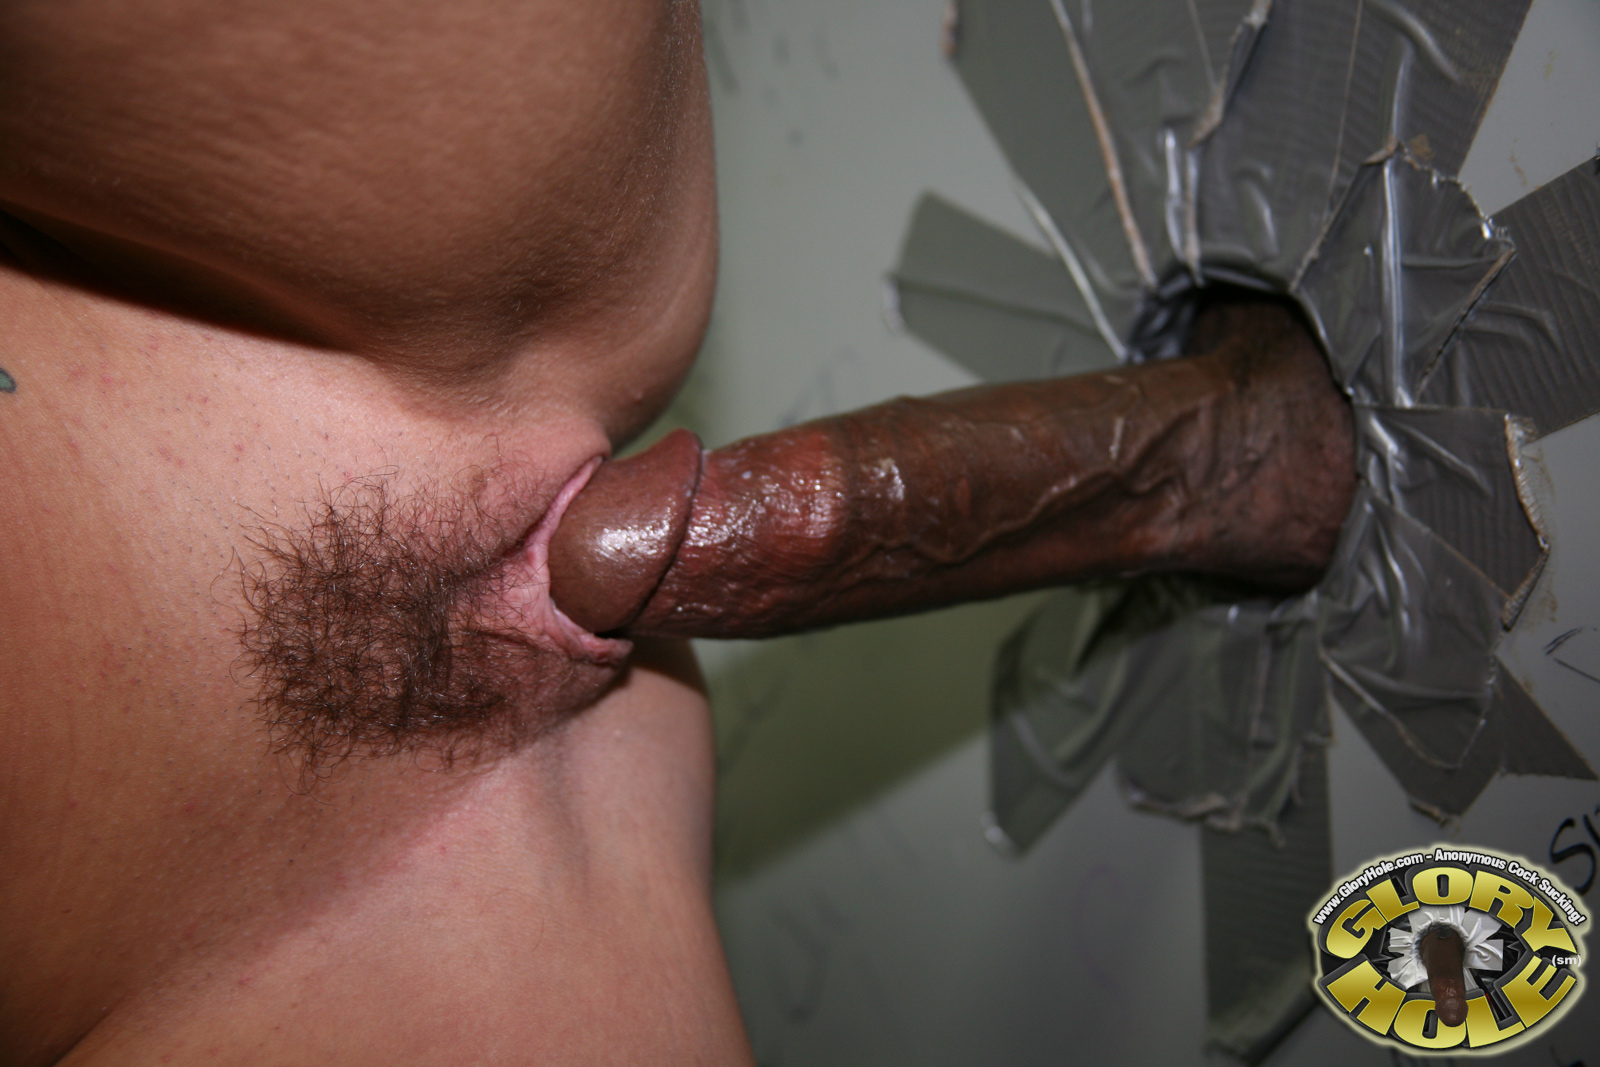 gloryhole videos, page 1 - XVIDEOSCOM